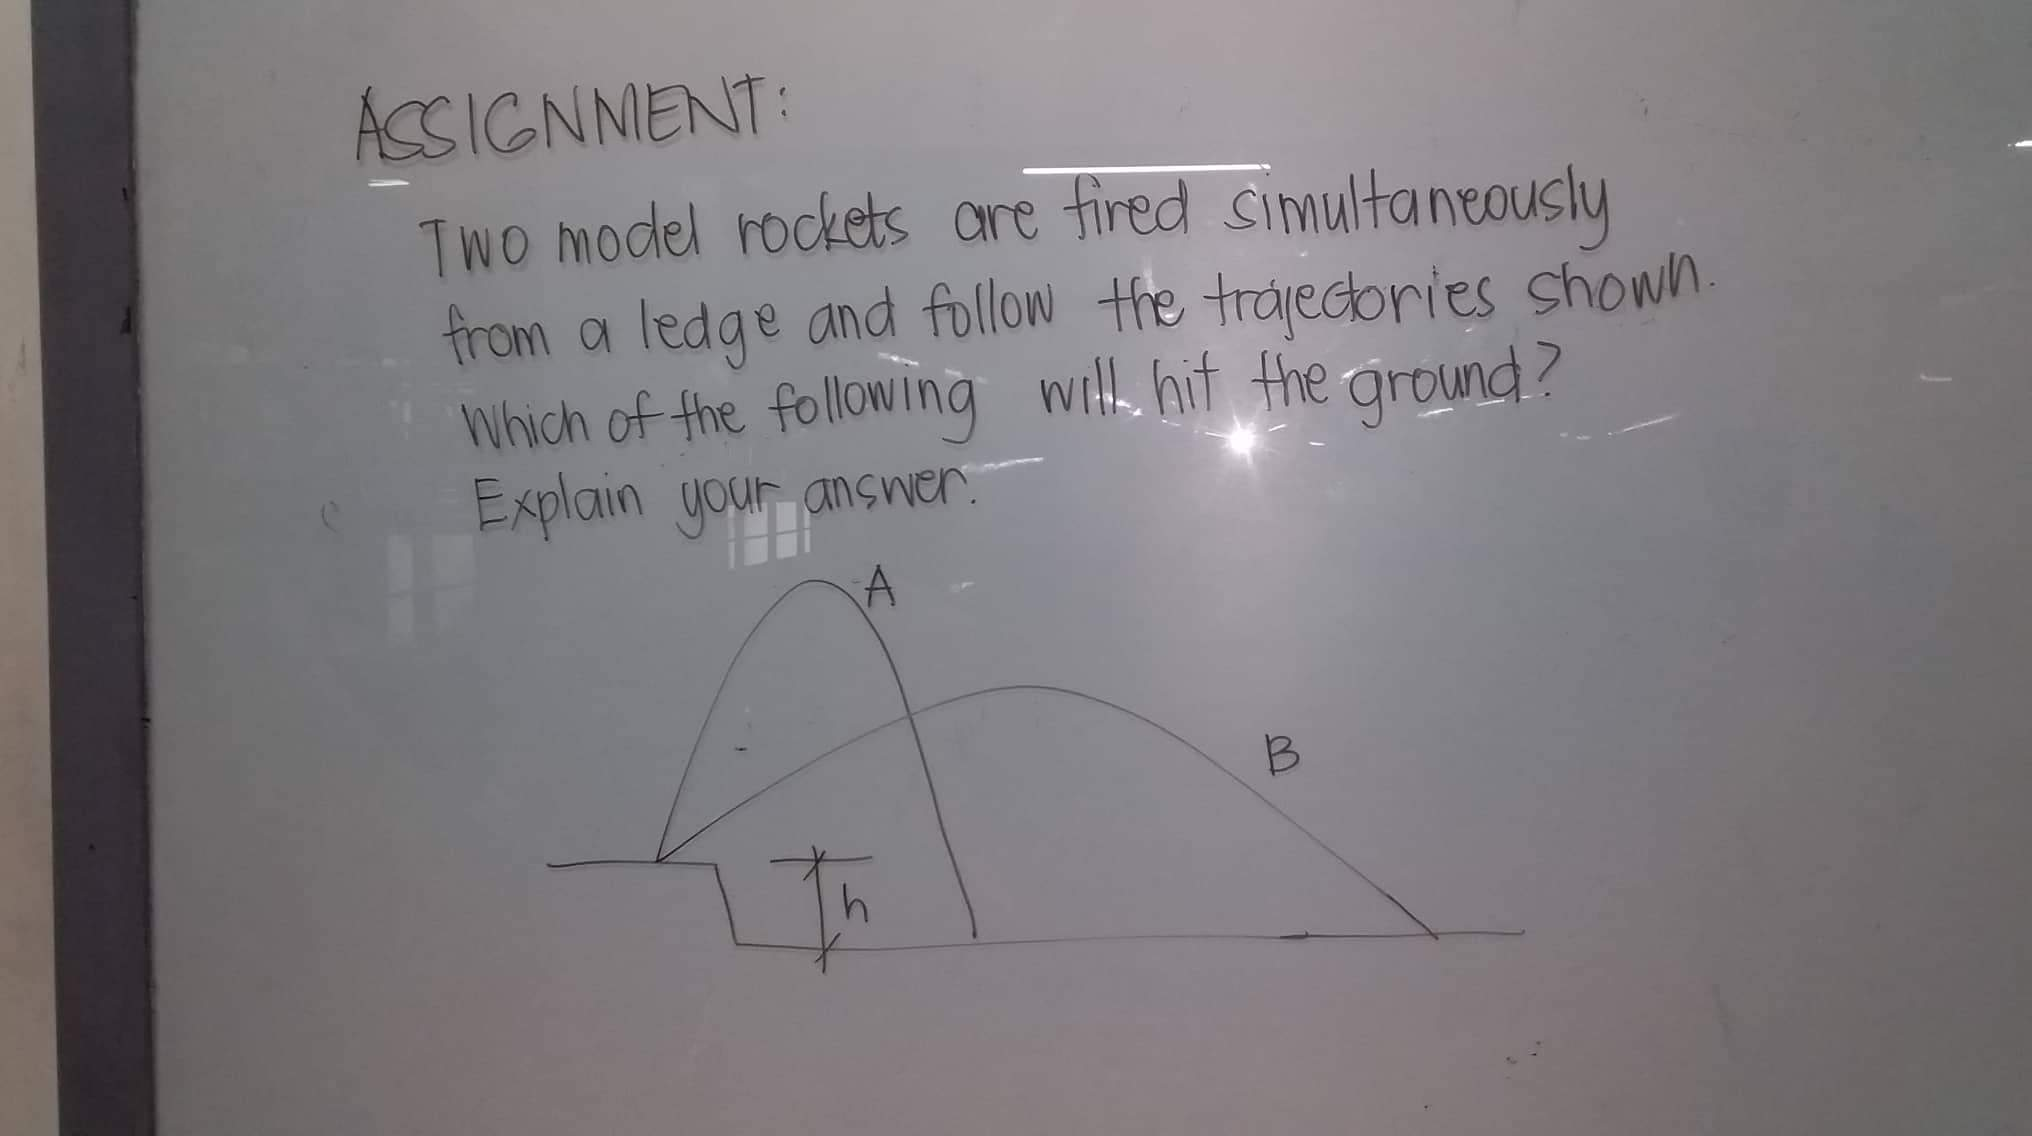 ACSIGNNENT: TwO model rockets ore fired simultaneously from a ledge and follow the trajecories shown. Which of the following with hit the ground? Explain your answer.